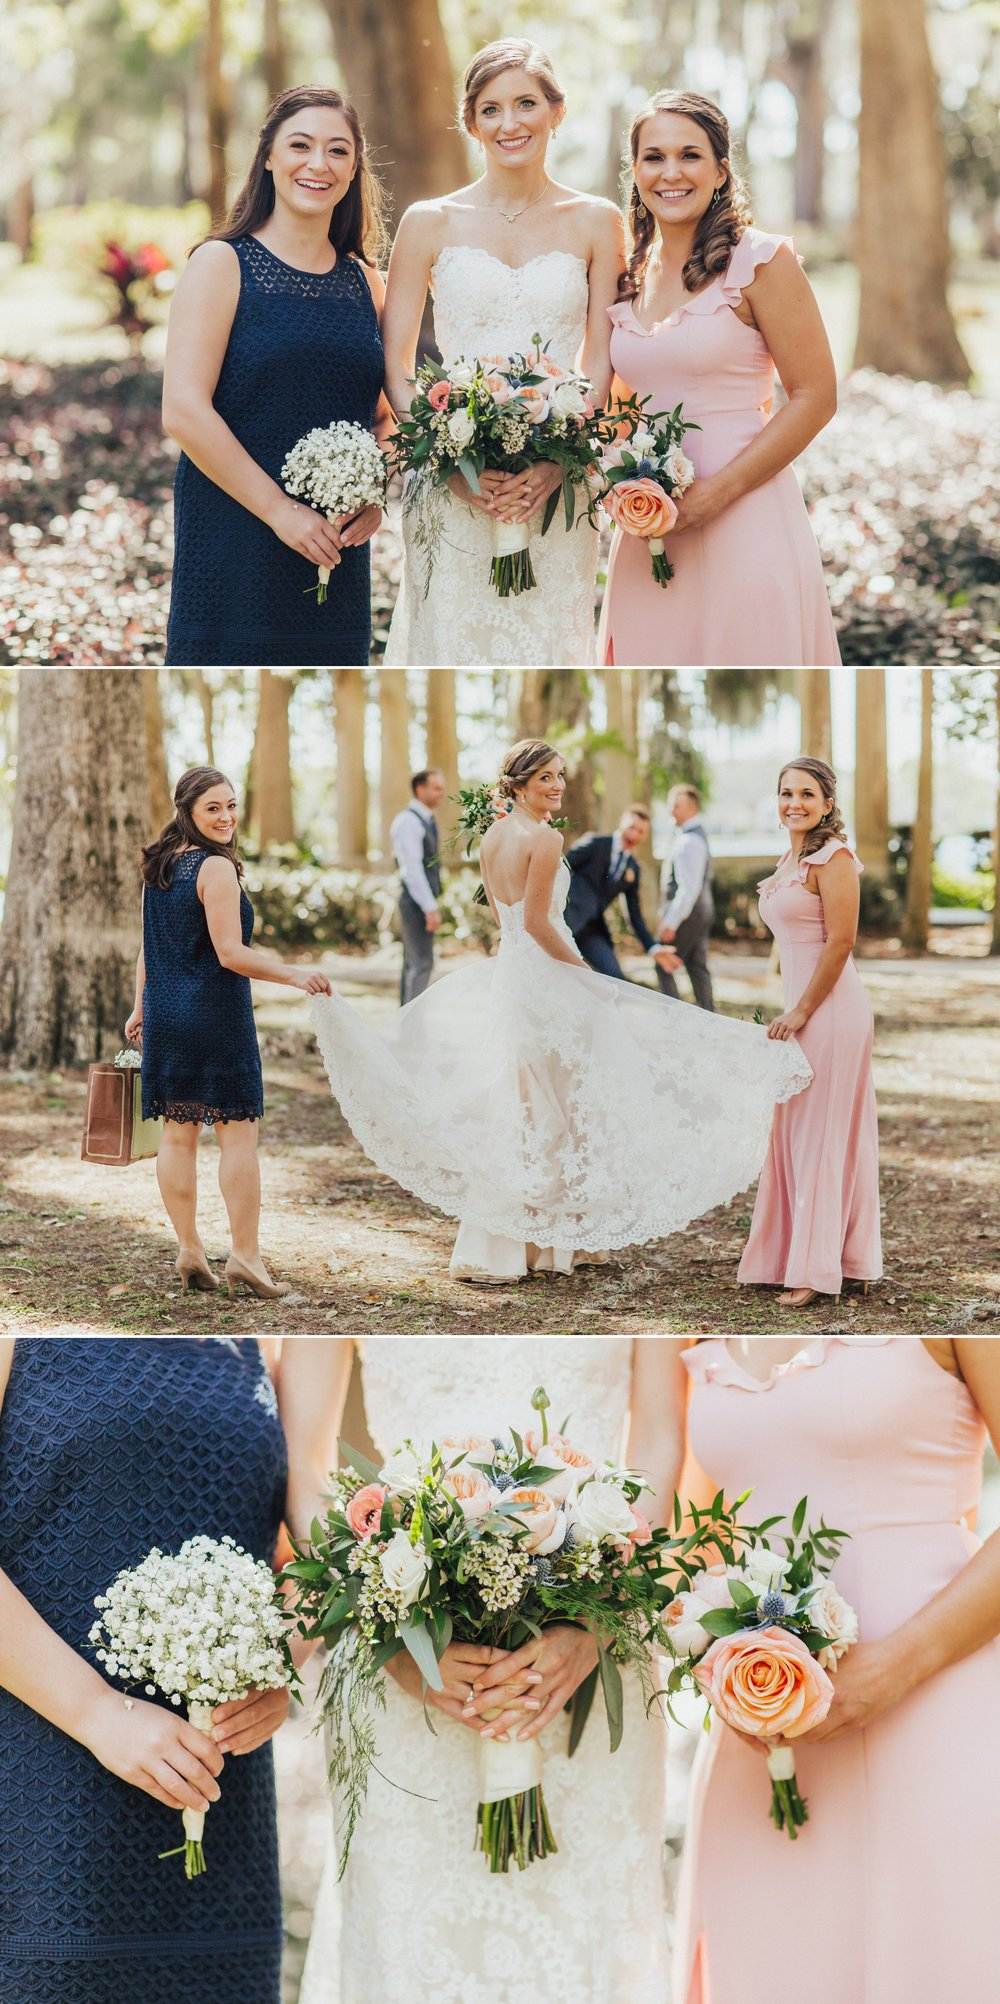 Winter Park farmers market wedding- bohemian chic floral wedding photography by Shaina DeCiryan9.jpg